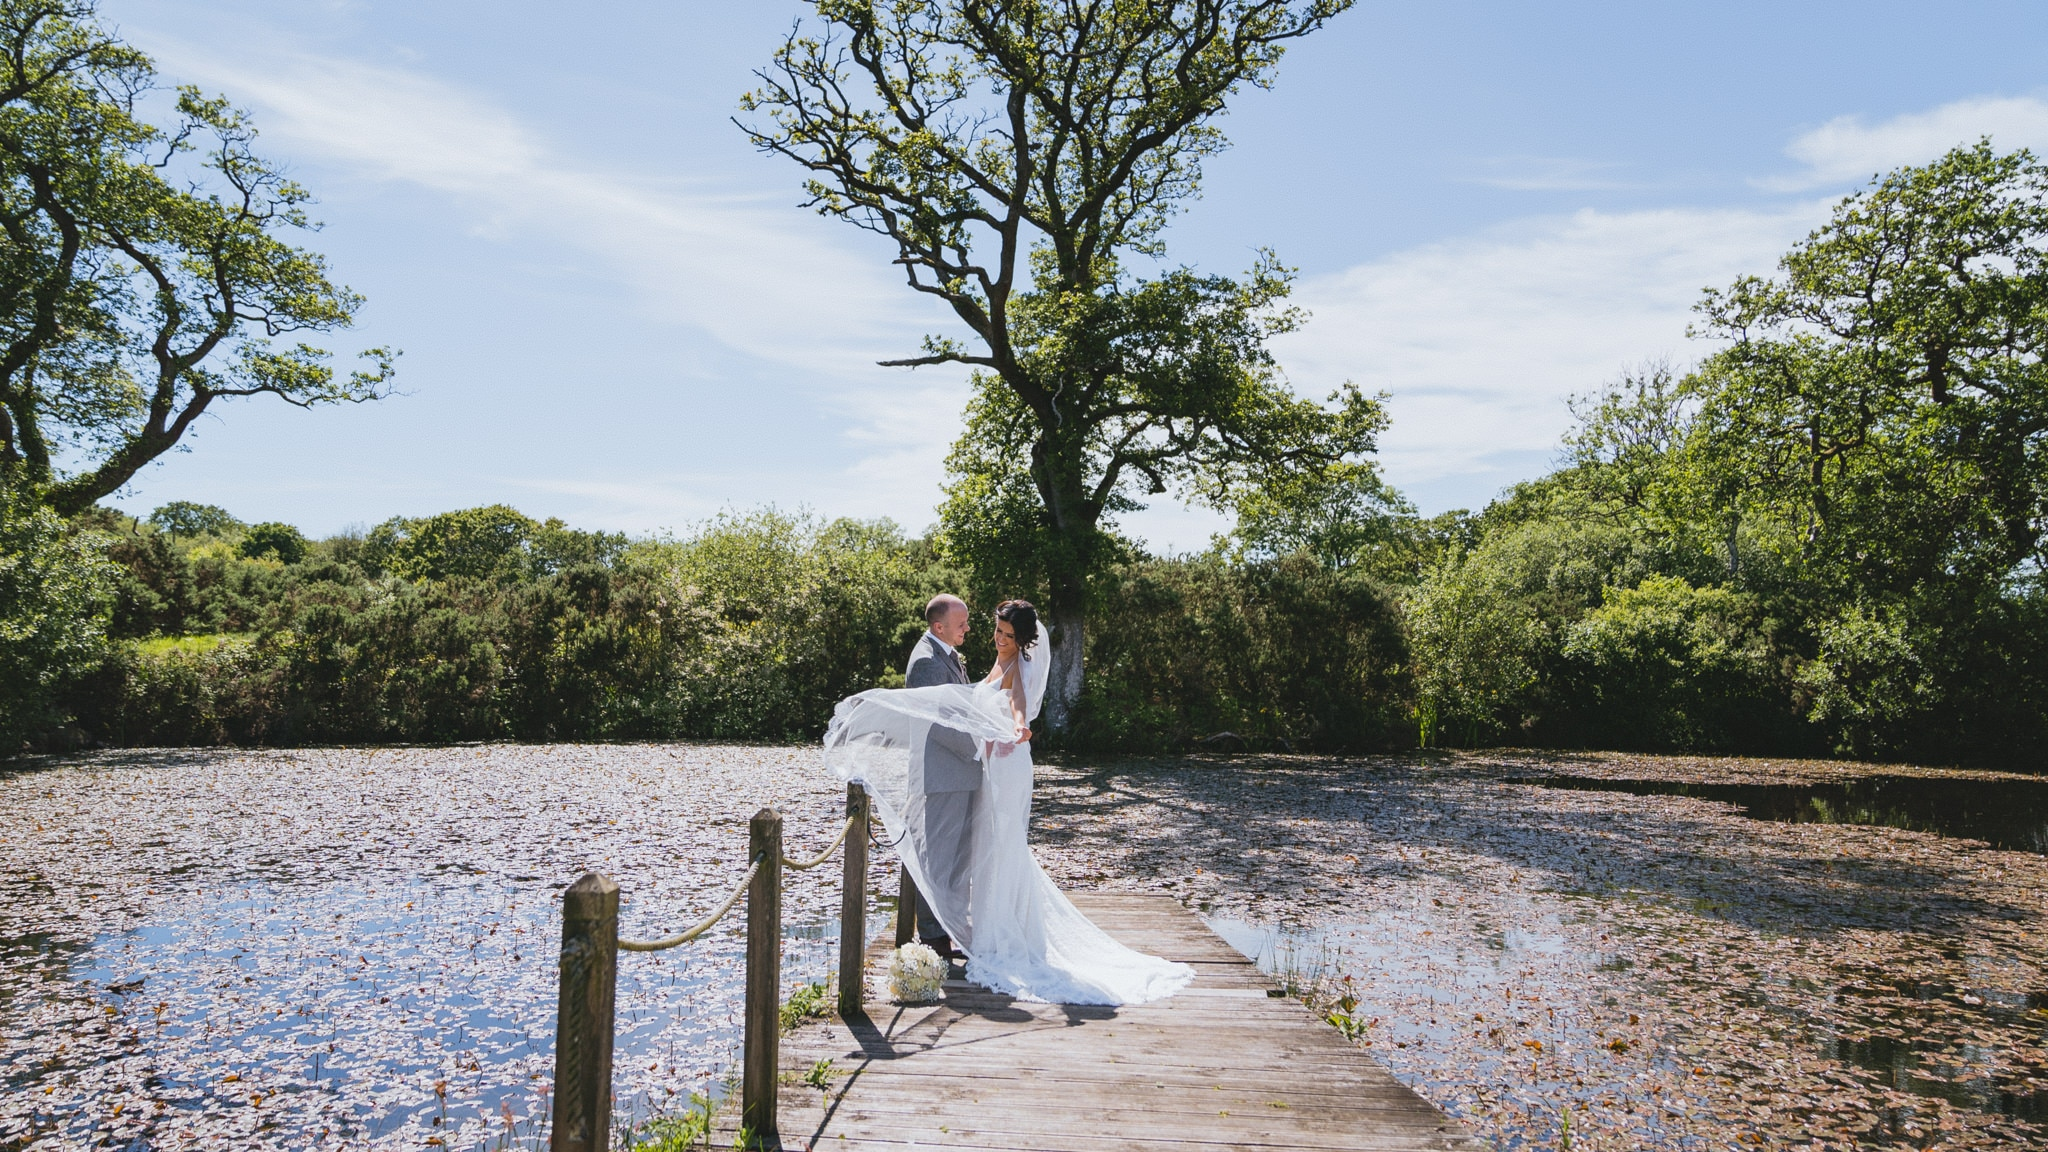 Oldwalls wedding photography of Bride and groom at oldwalls gower for their wedding in May